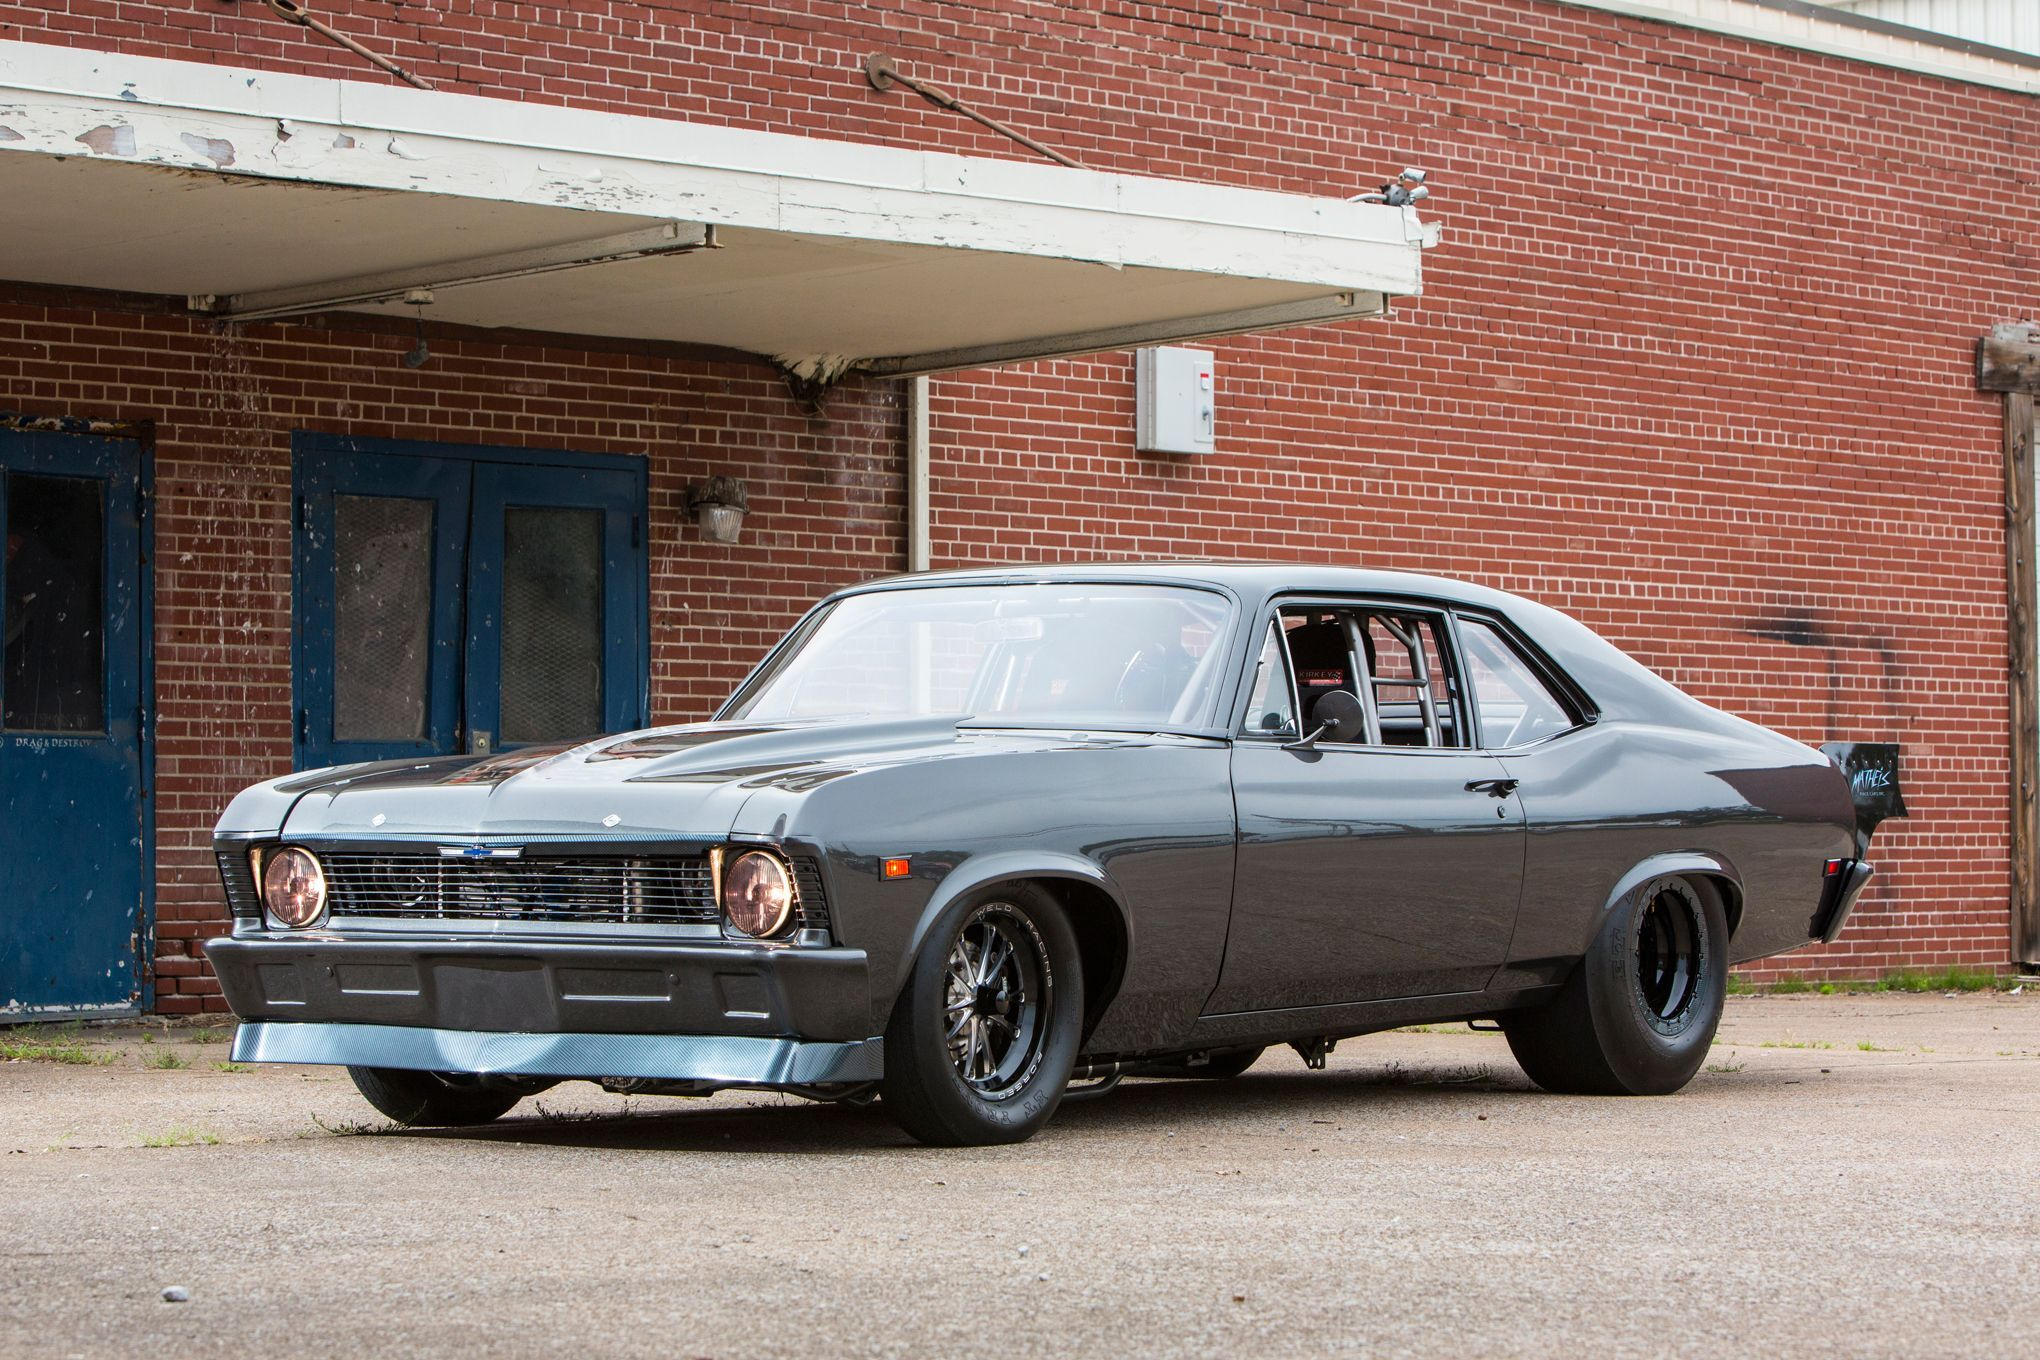 Dan Novaras 2,000HP 1969 Chevrolet Nova | Drag Racing V | Pinterest ...